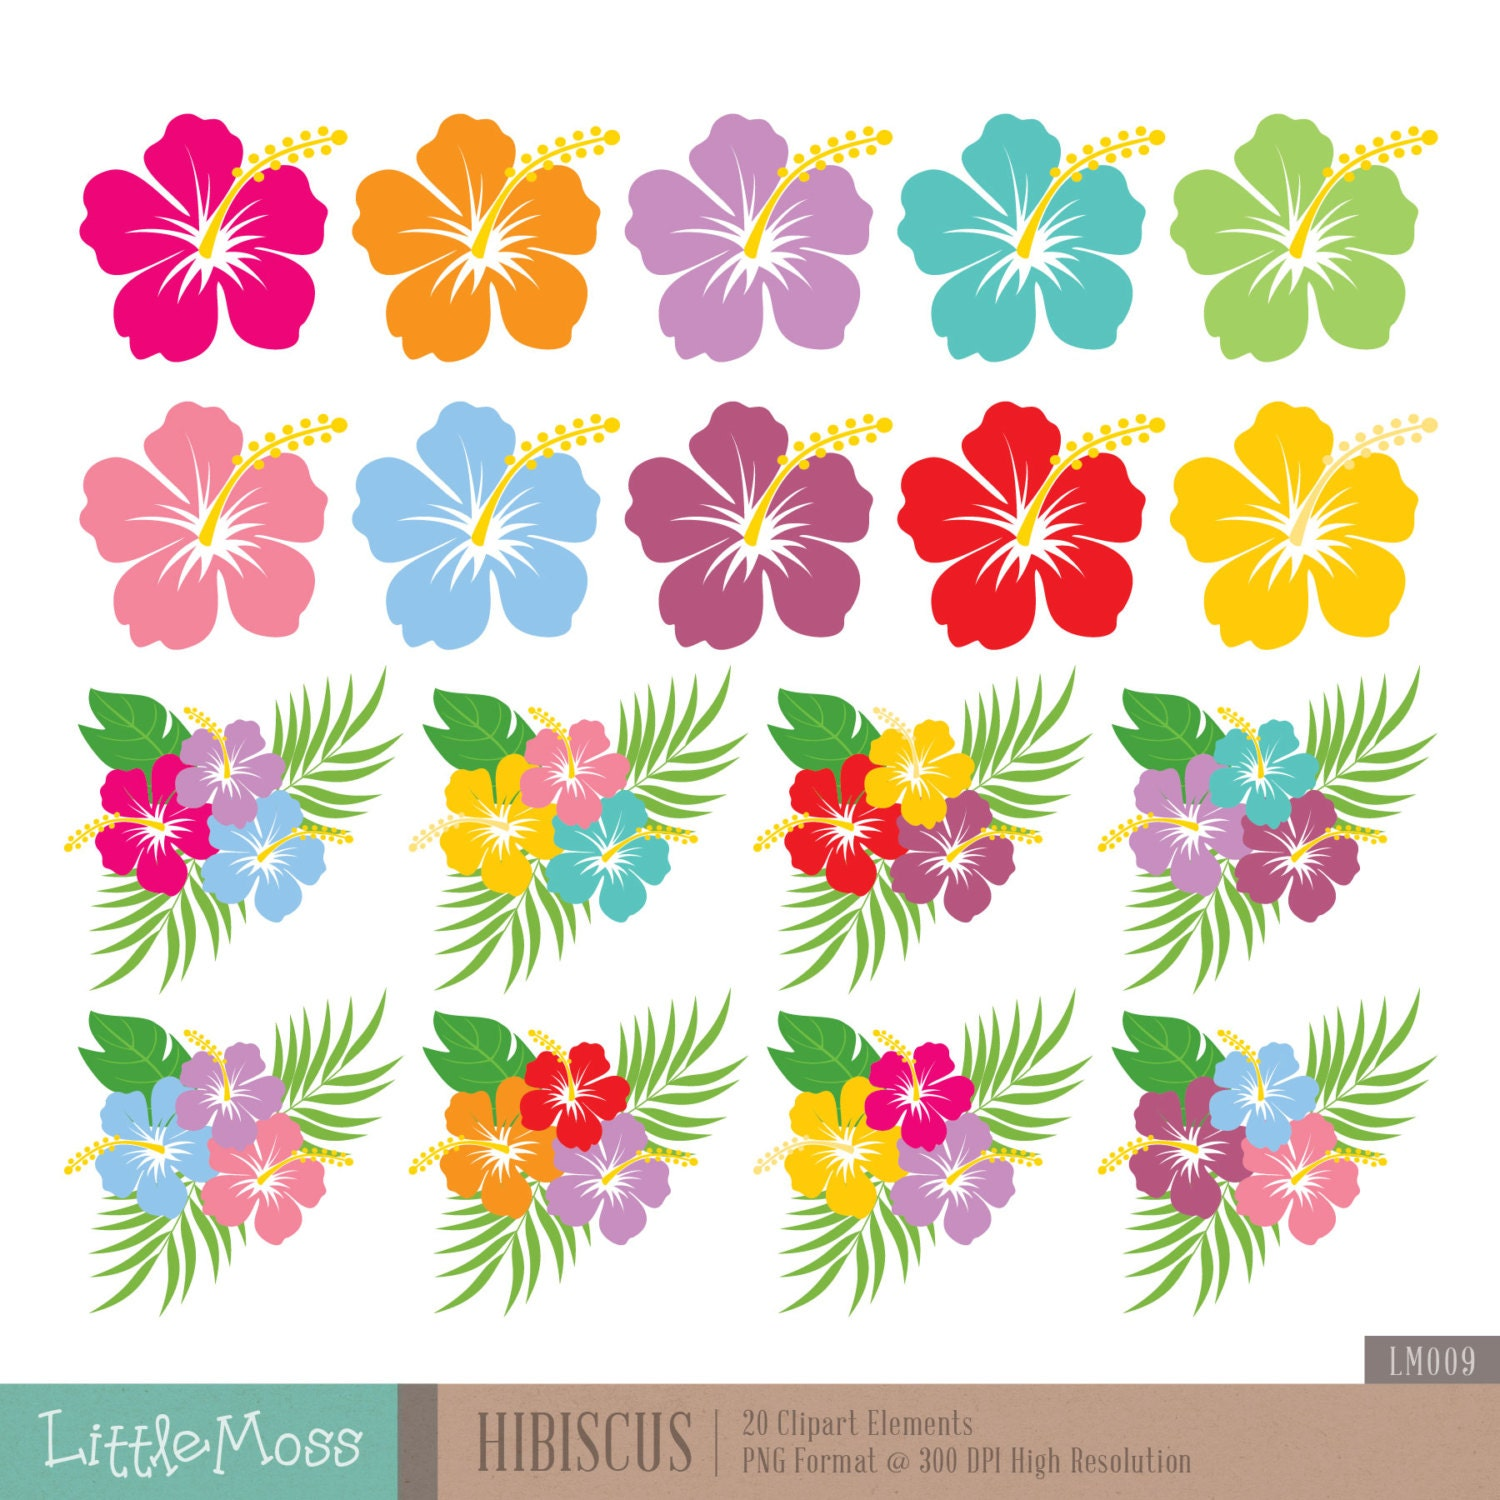 Tropical Invitations was luxury invitations design